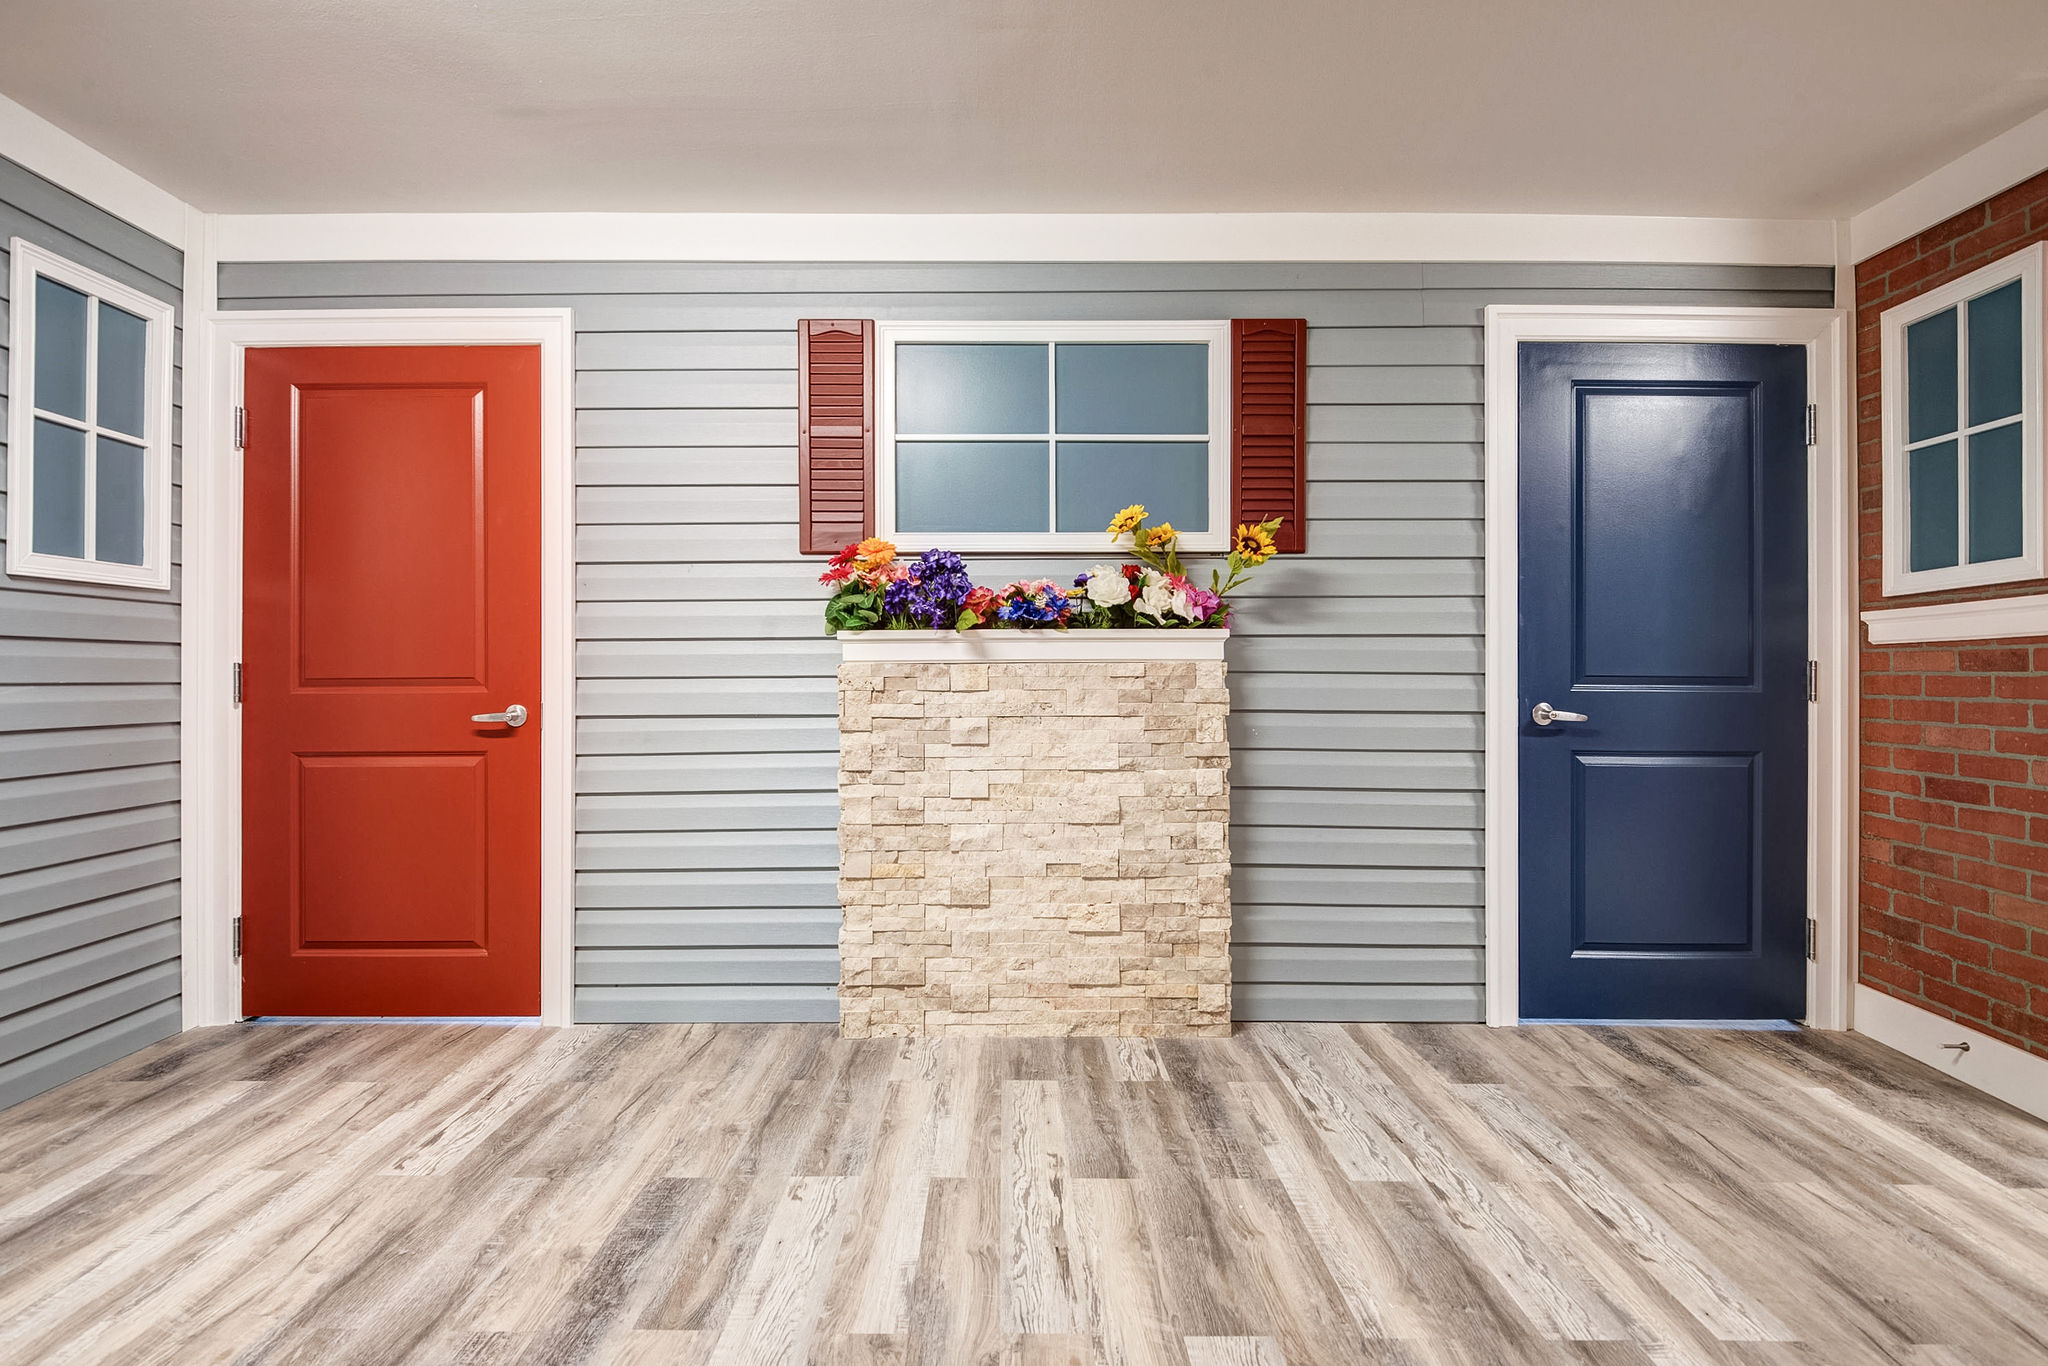 Brown and blue doors